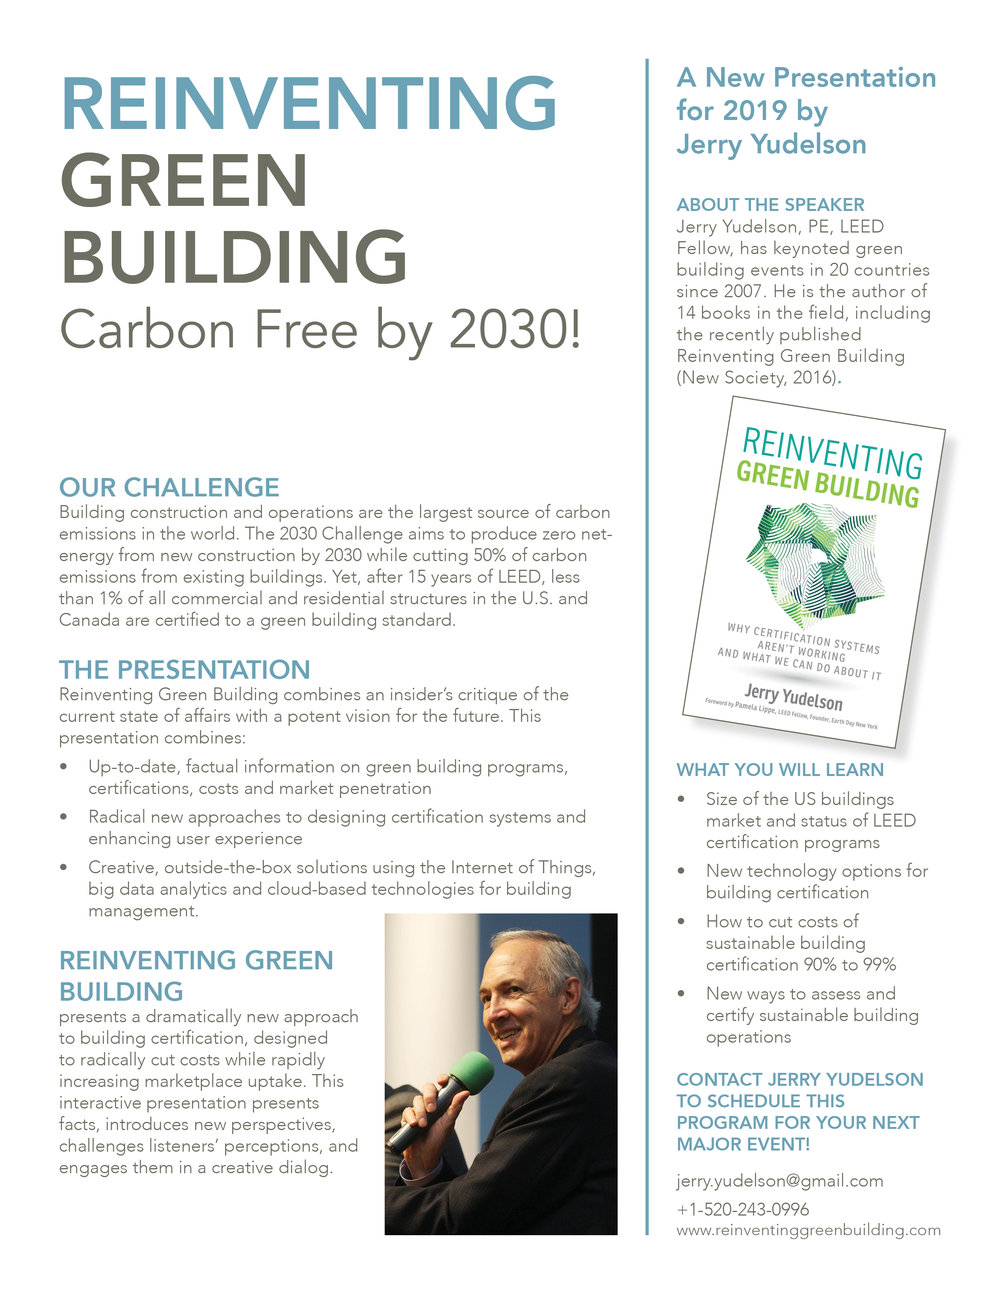 Carbon Free by 2030.jpg